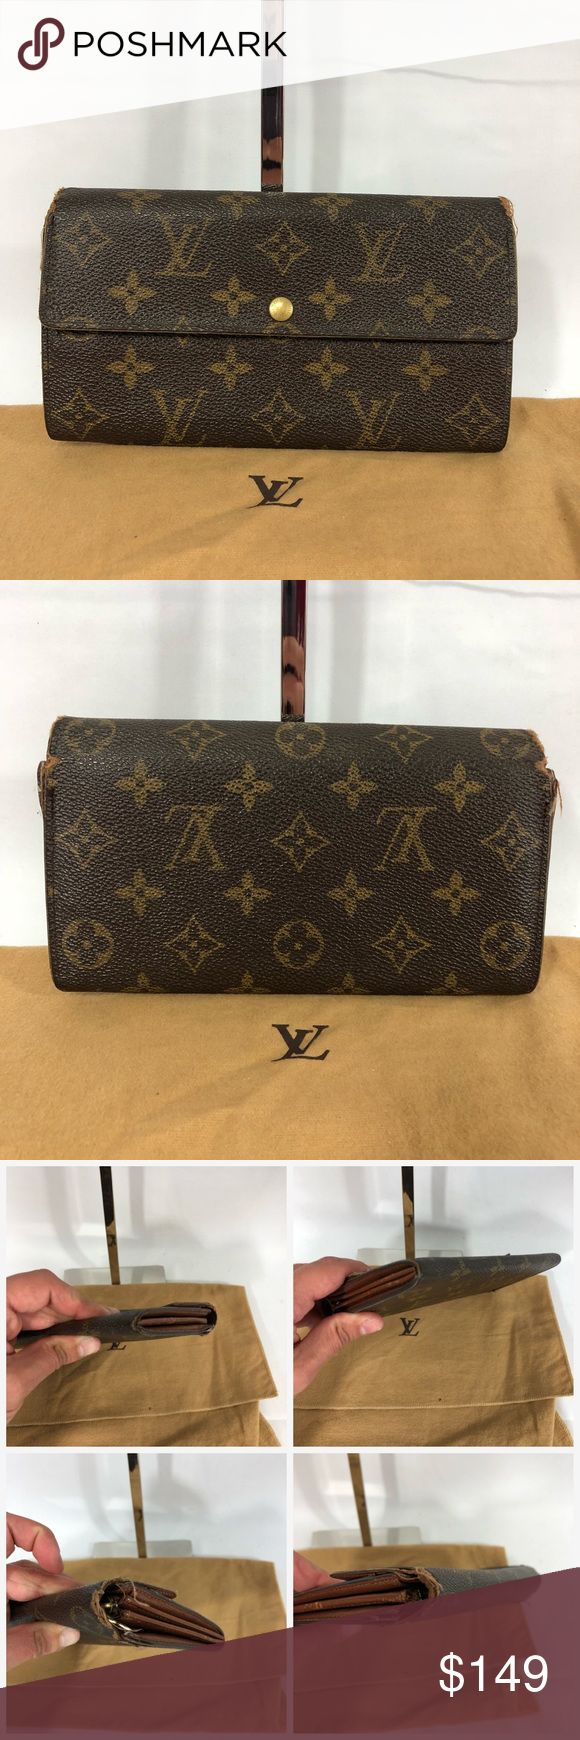 Authentic Louis Vuitton Mono Wallet Wear on corners and edges with loose stitching. Easy cobbler repair. Interior in good condition. Please see all photos. Approximate dimensions are 7.5 inches long and 4 inches tall. No trades please. Louis Vuitton Bags Wallets